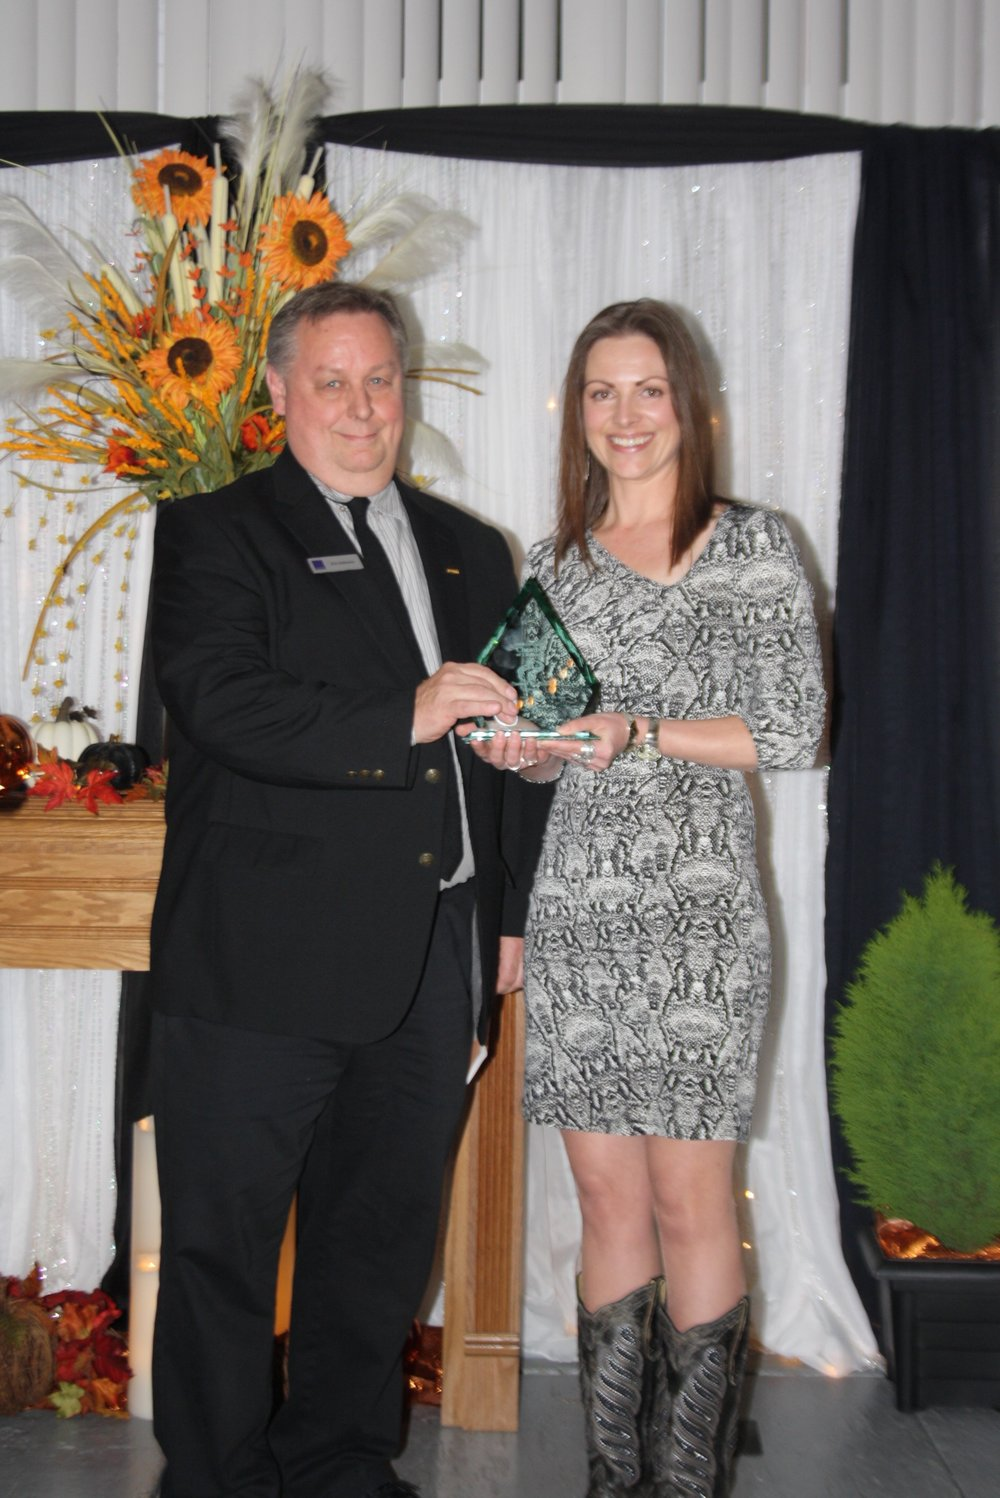 2018 Award recipient - Argyle Wines received the 2018 Food & Drink Business of the Year Award from sponsor: Eastlink